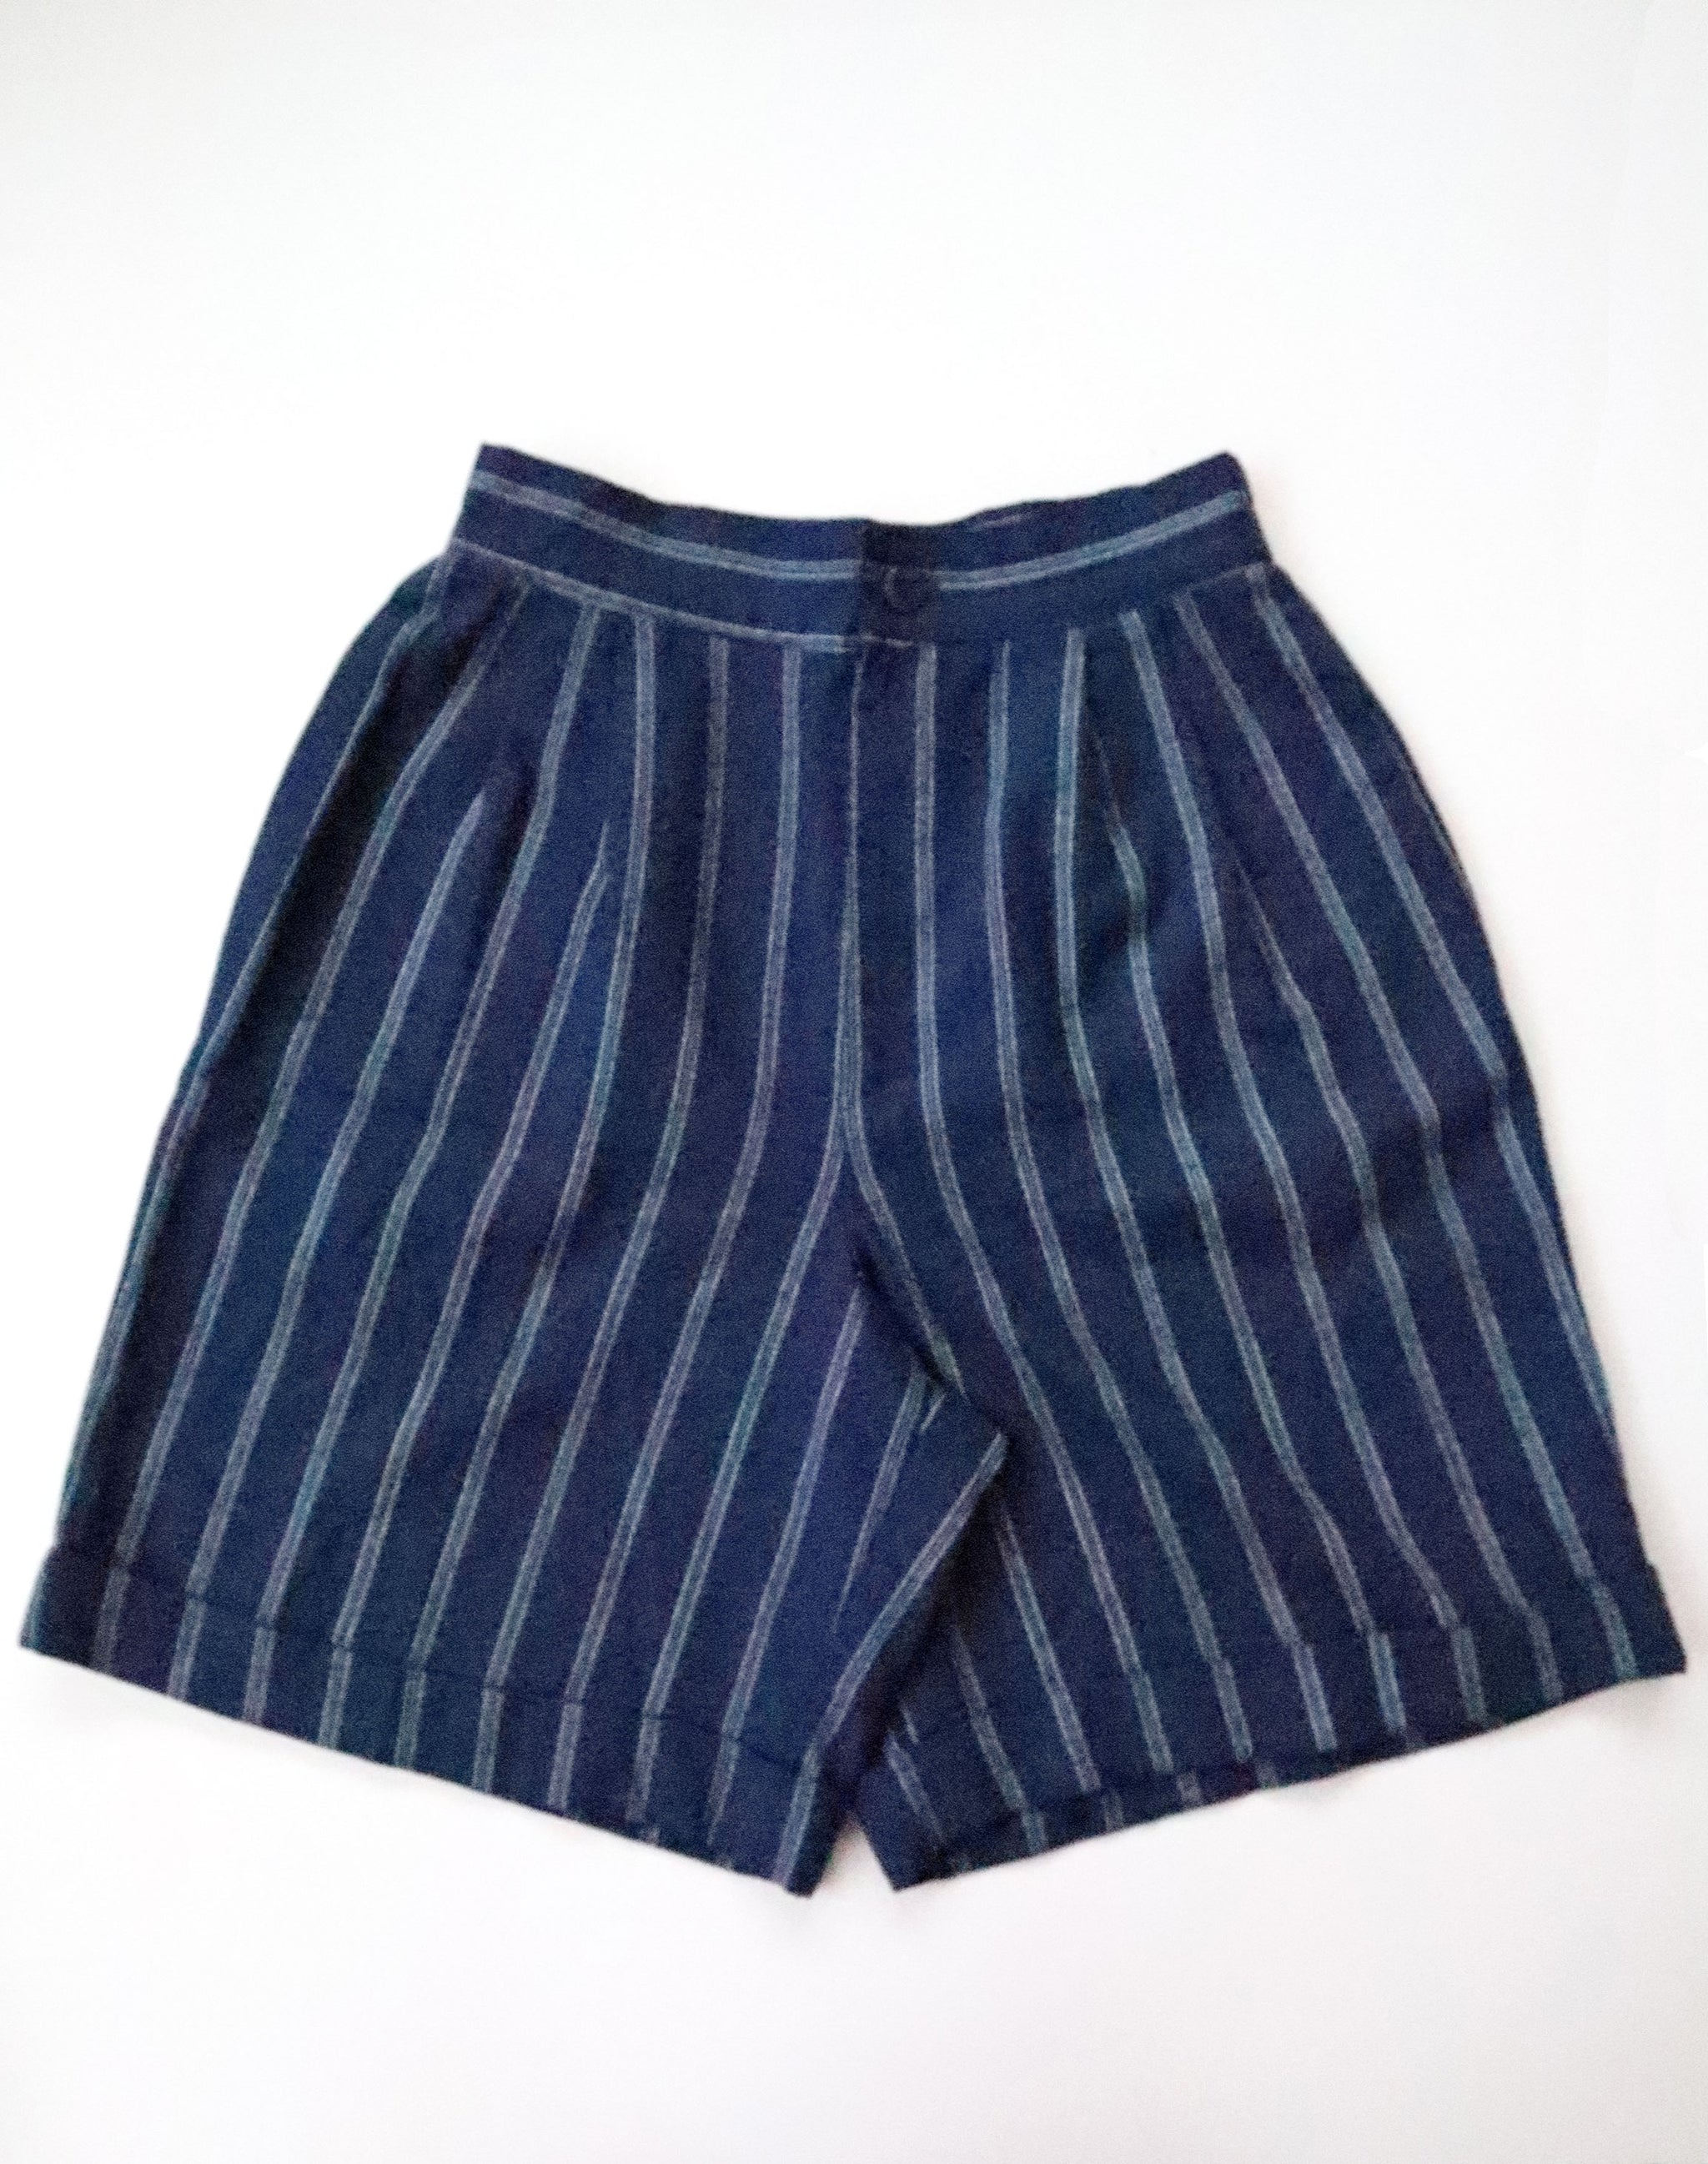 Vintage 90s Fundamental Things Navy Pinstriped Walking Shorts